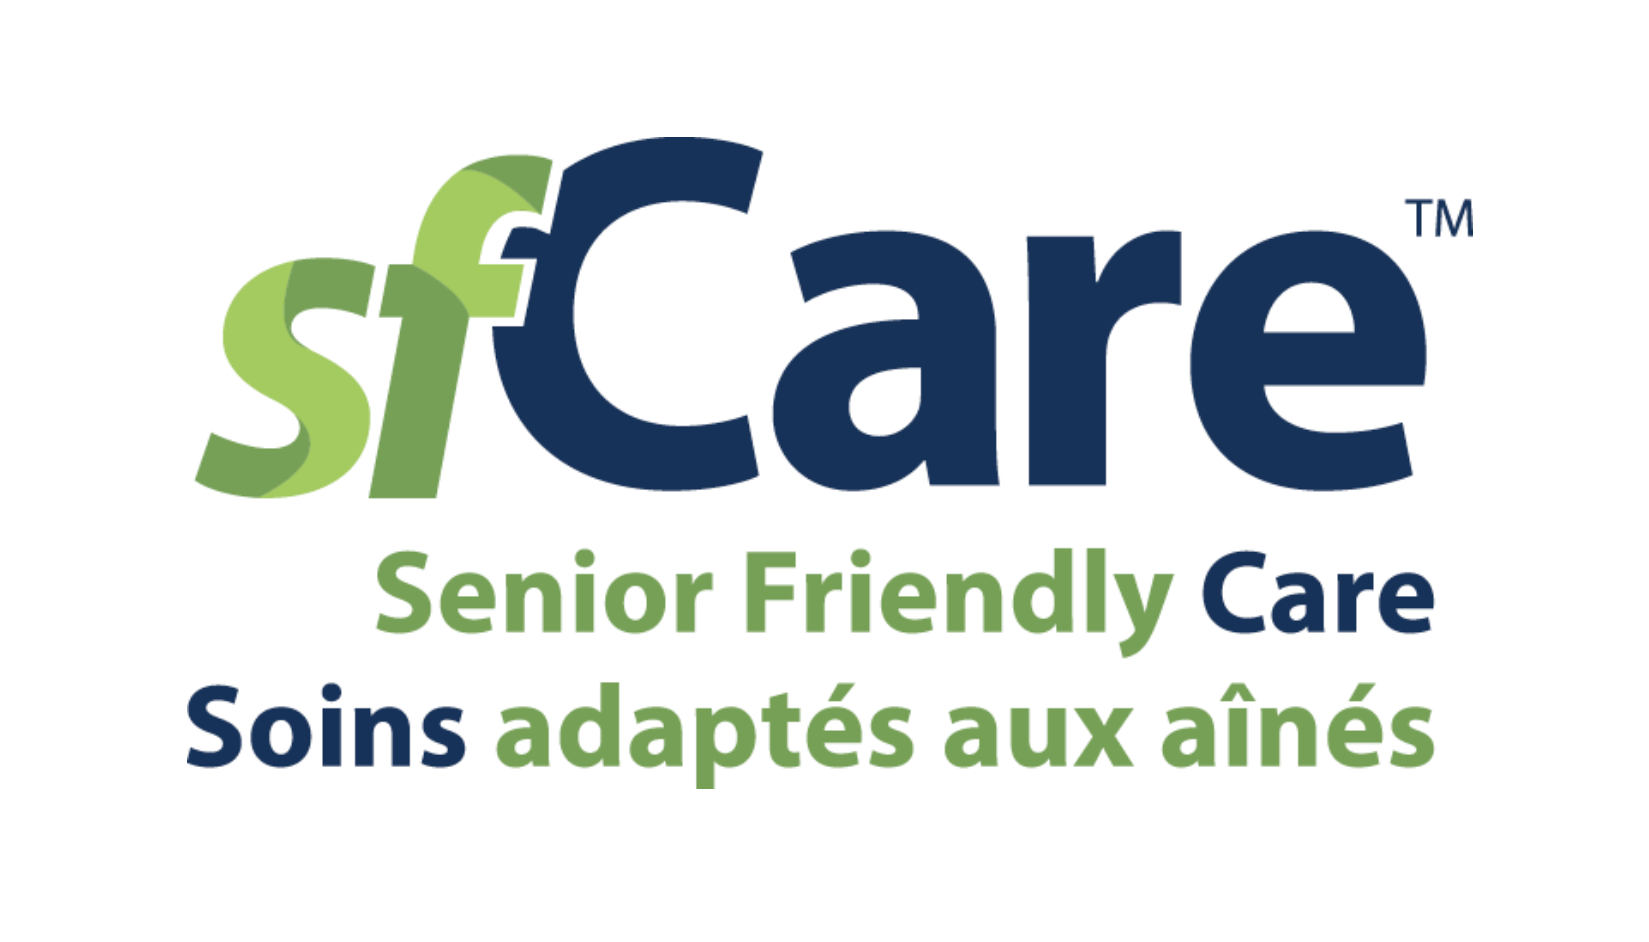 What's coming up for sfCare